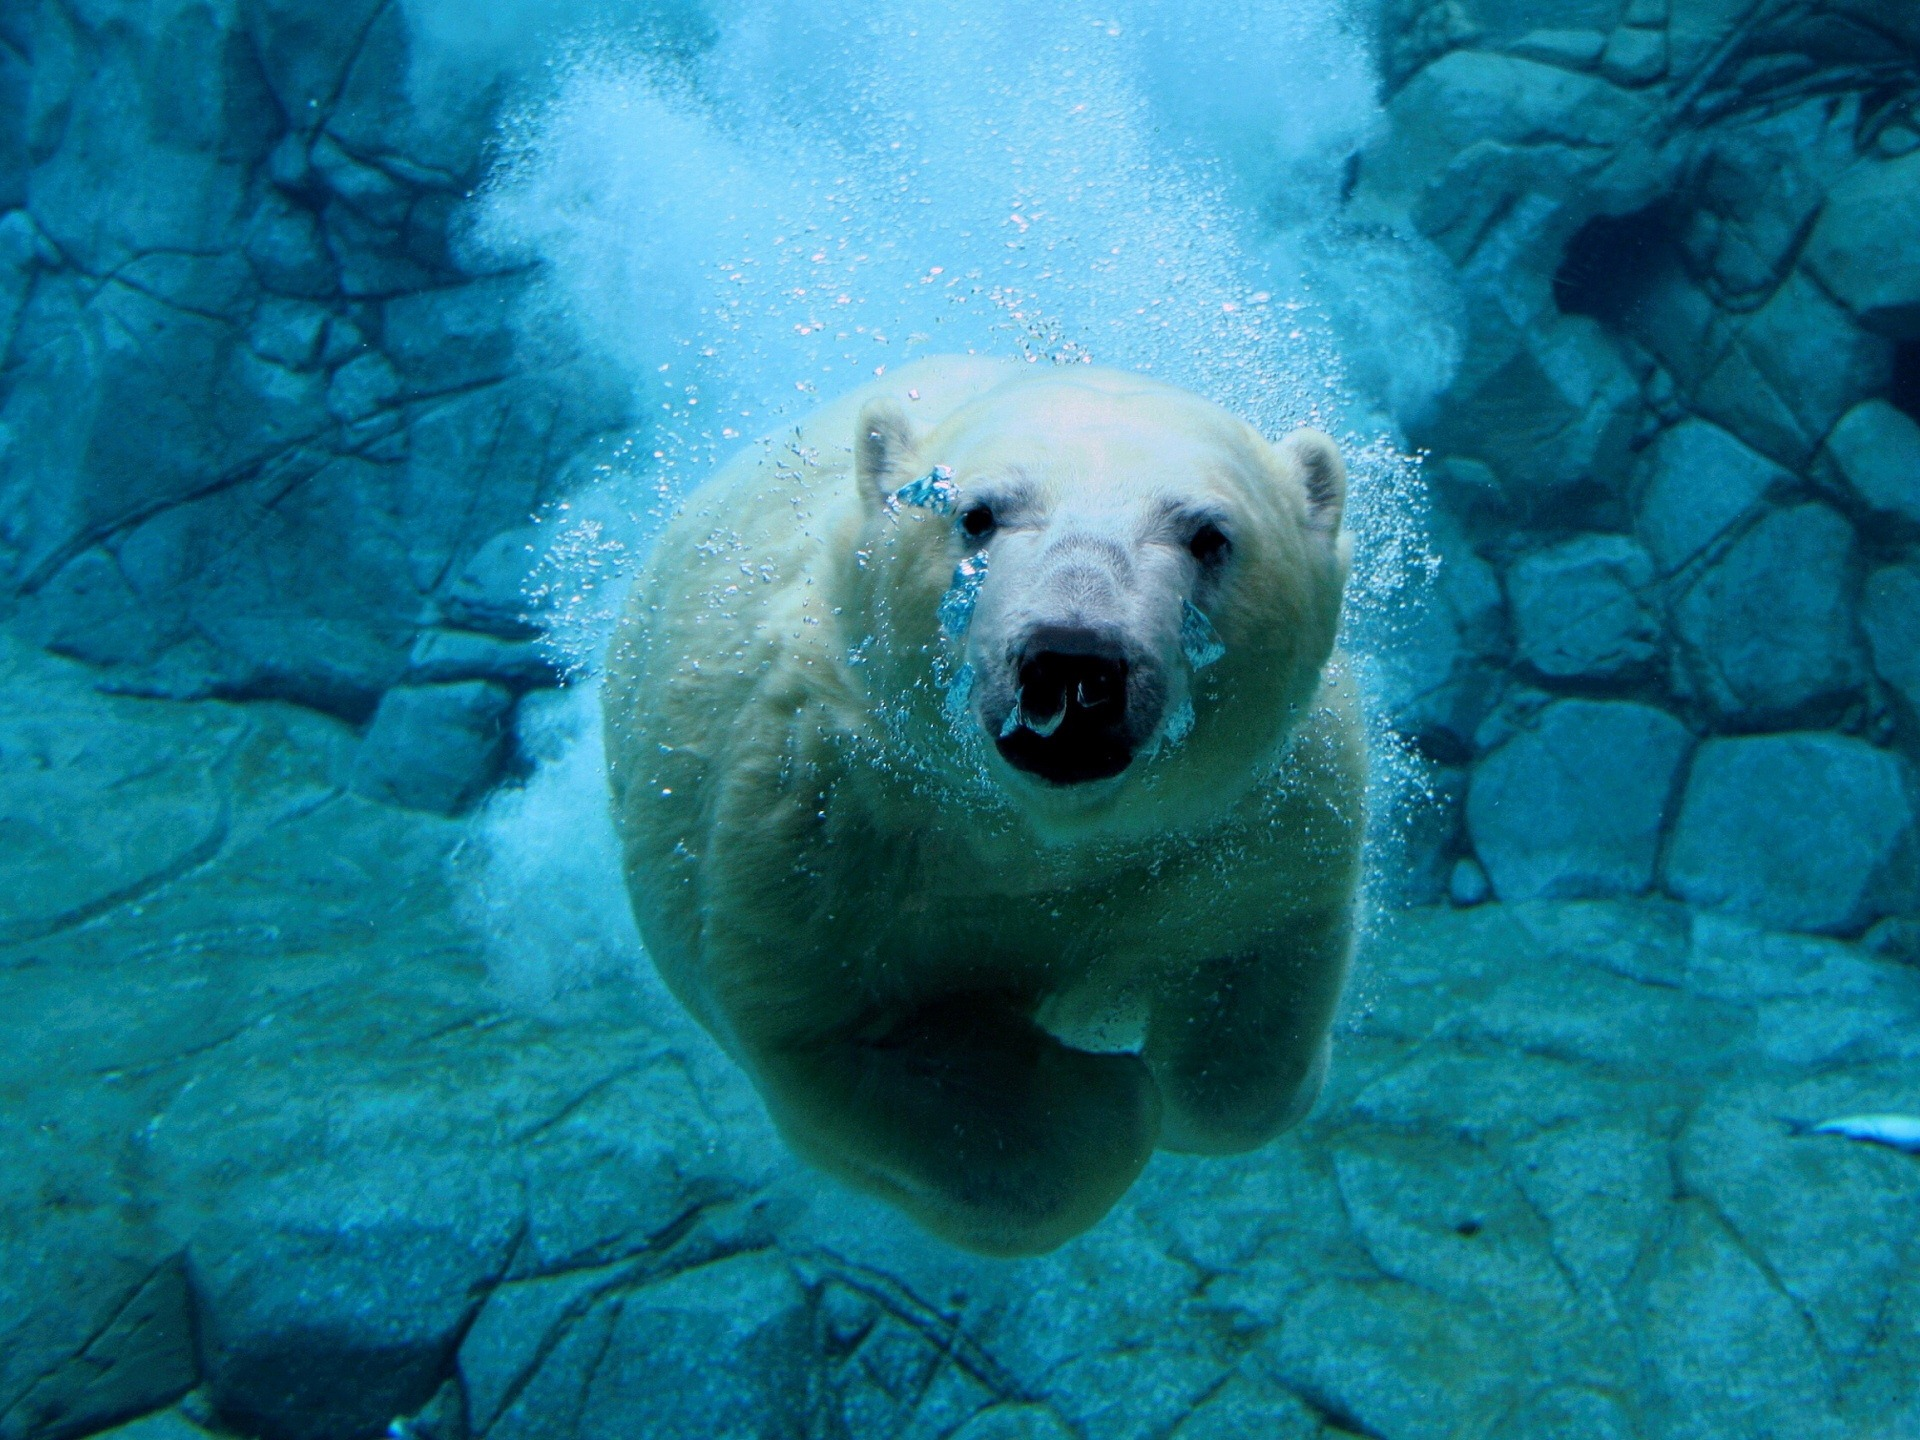 swimming polar bear wallpaper bears animals wallpapers in jpg format